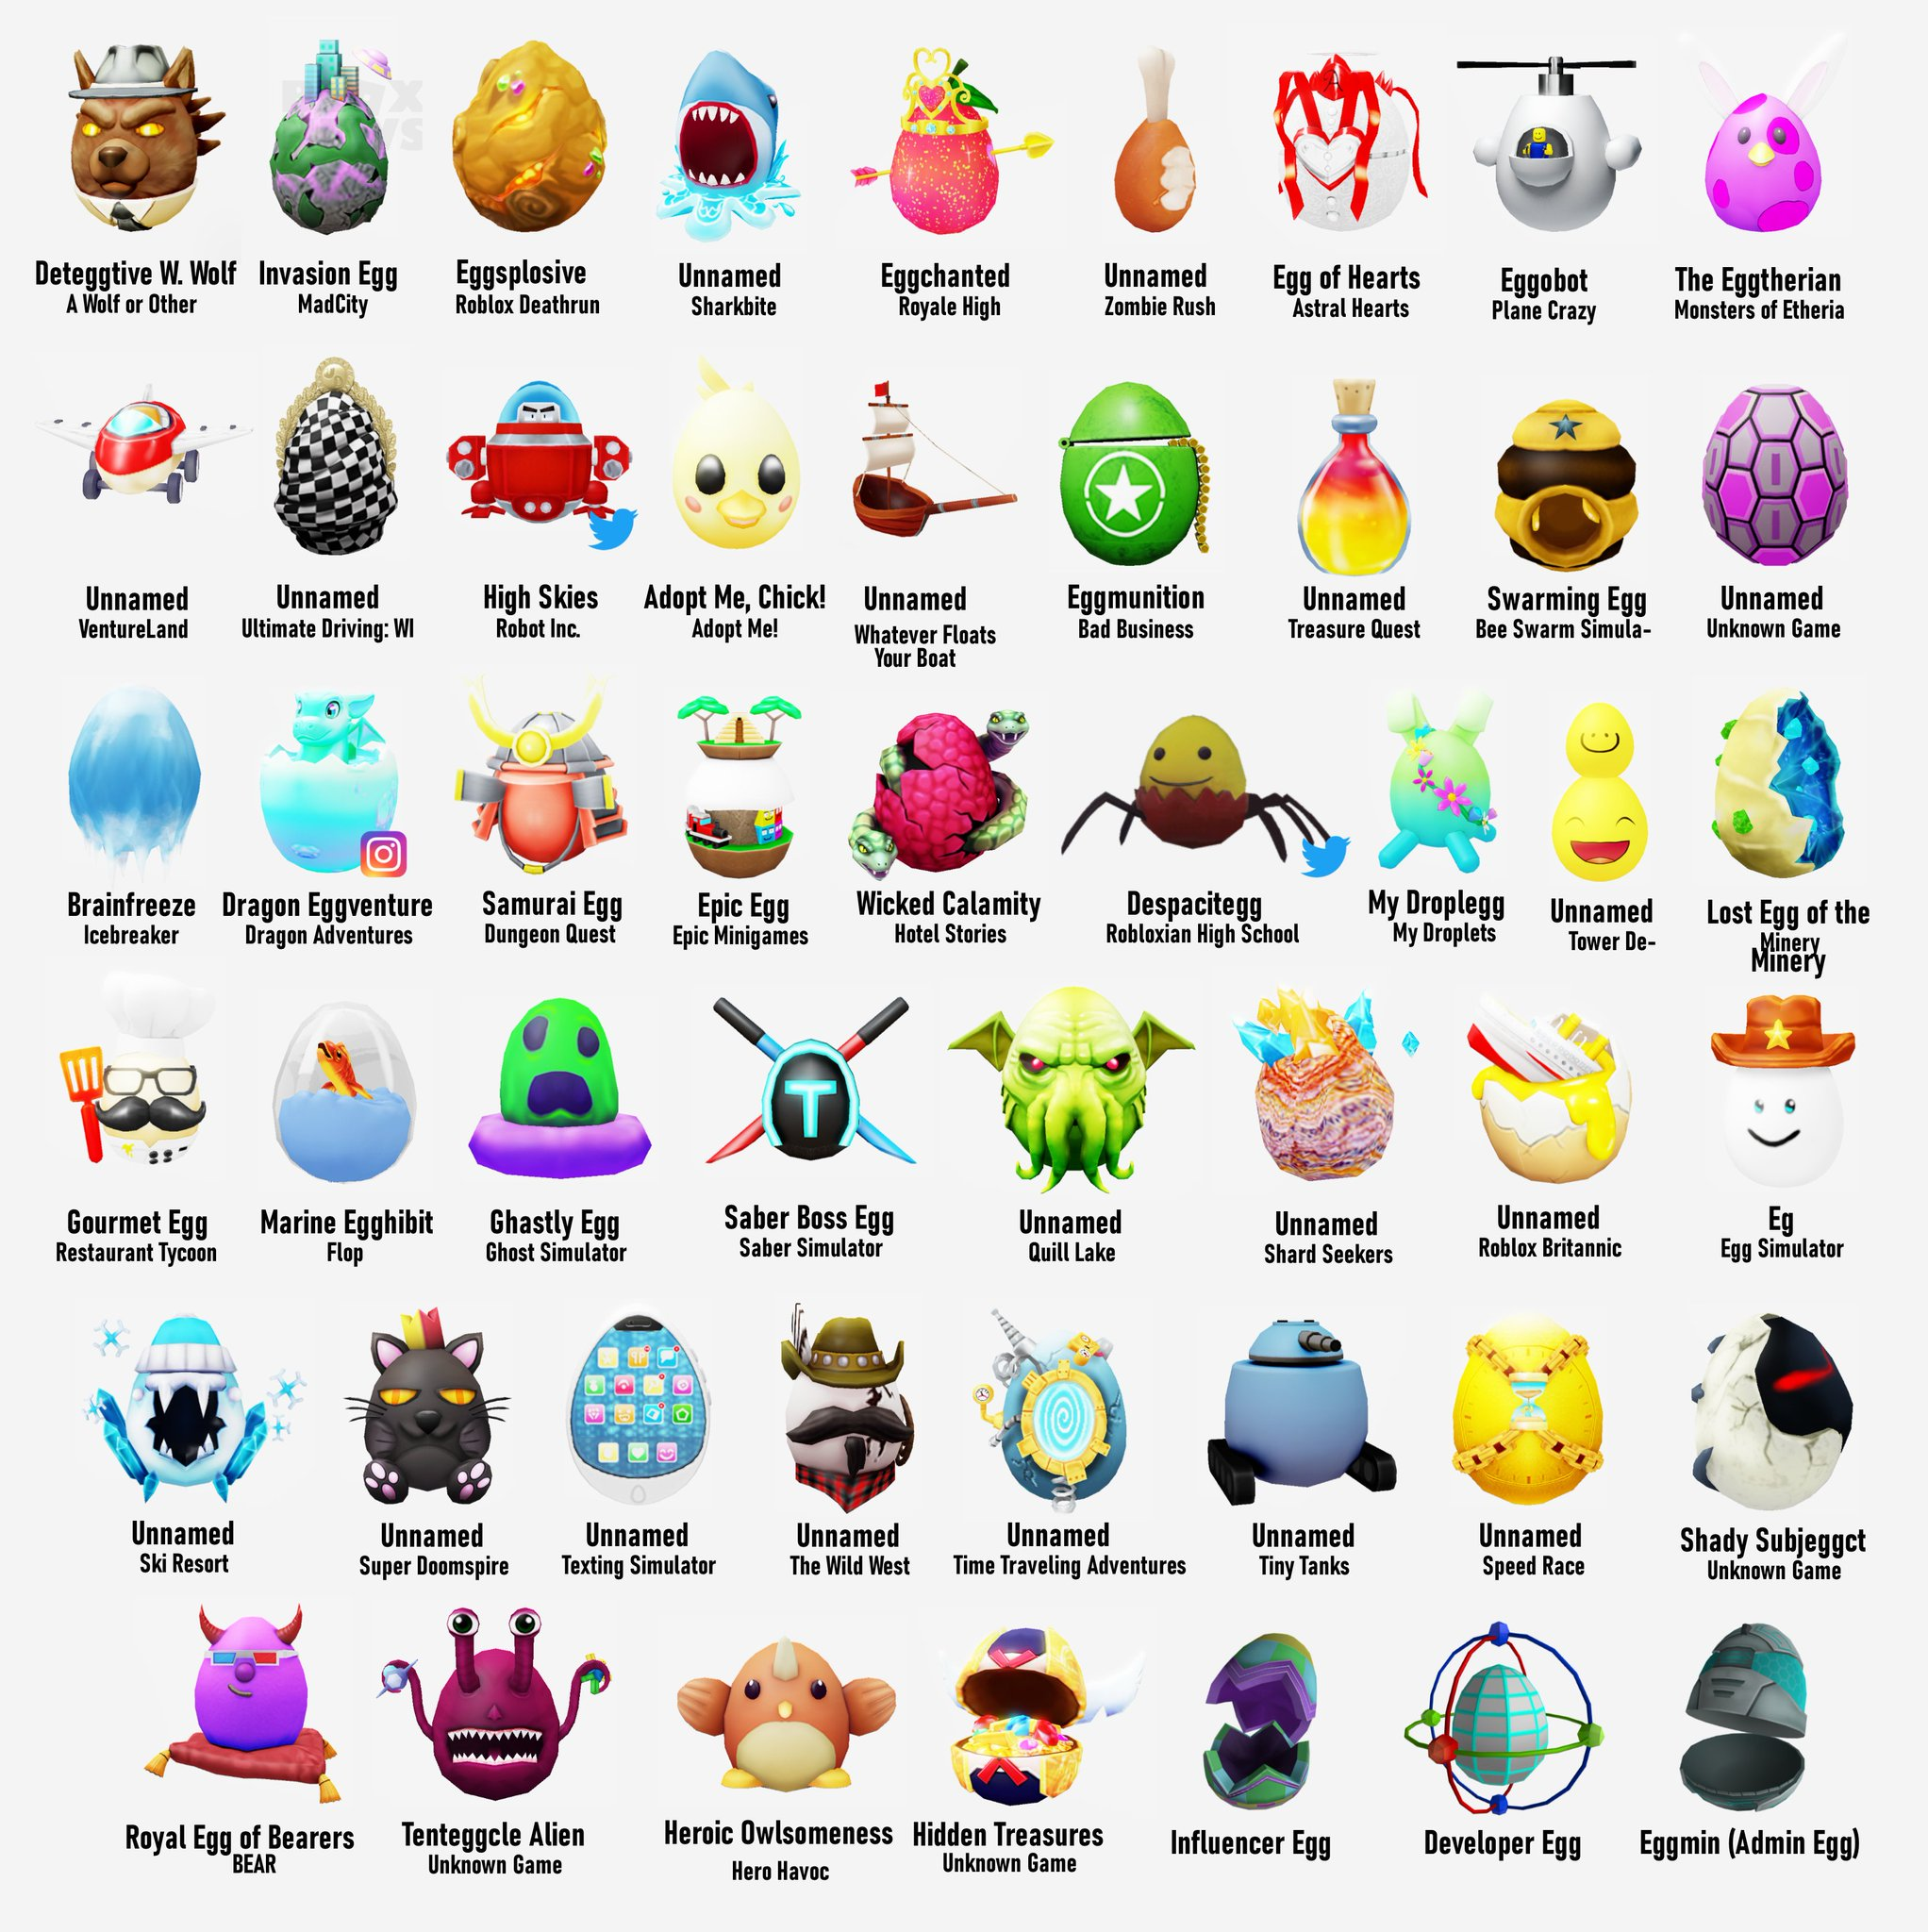 Bloxy News On Twitter Hello Agents I M Back With More Leaked Eggs For The Roblox Egghunt2020 Agents Of Egg This Time However There Are 50 Eggs Along With Their Corresponding Games